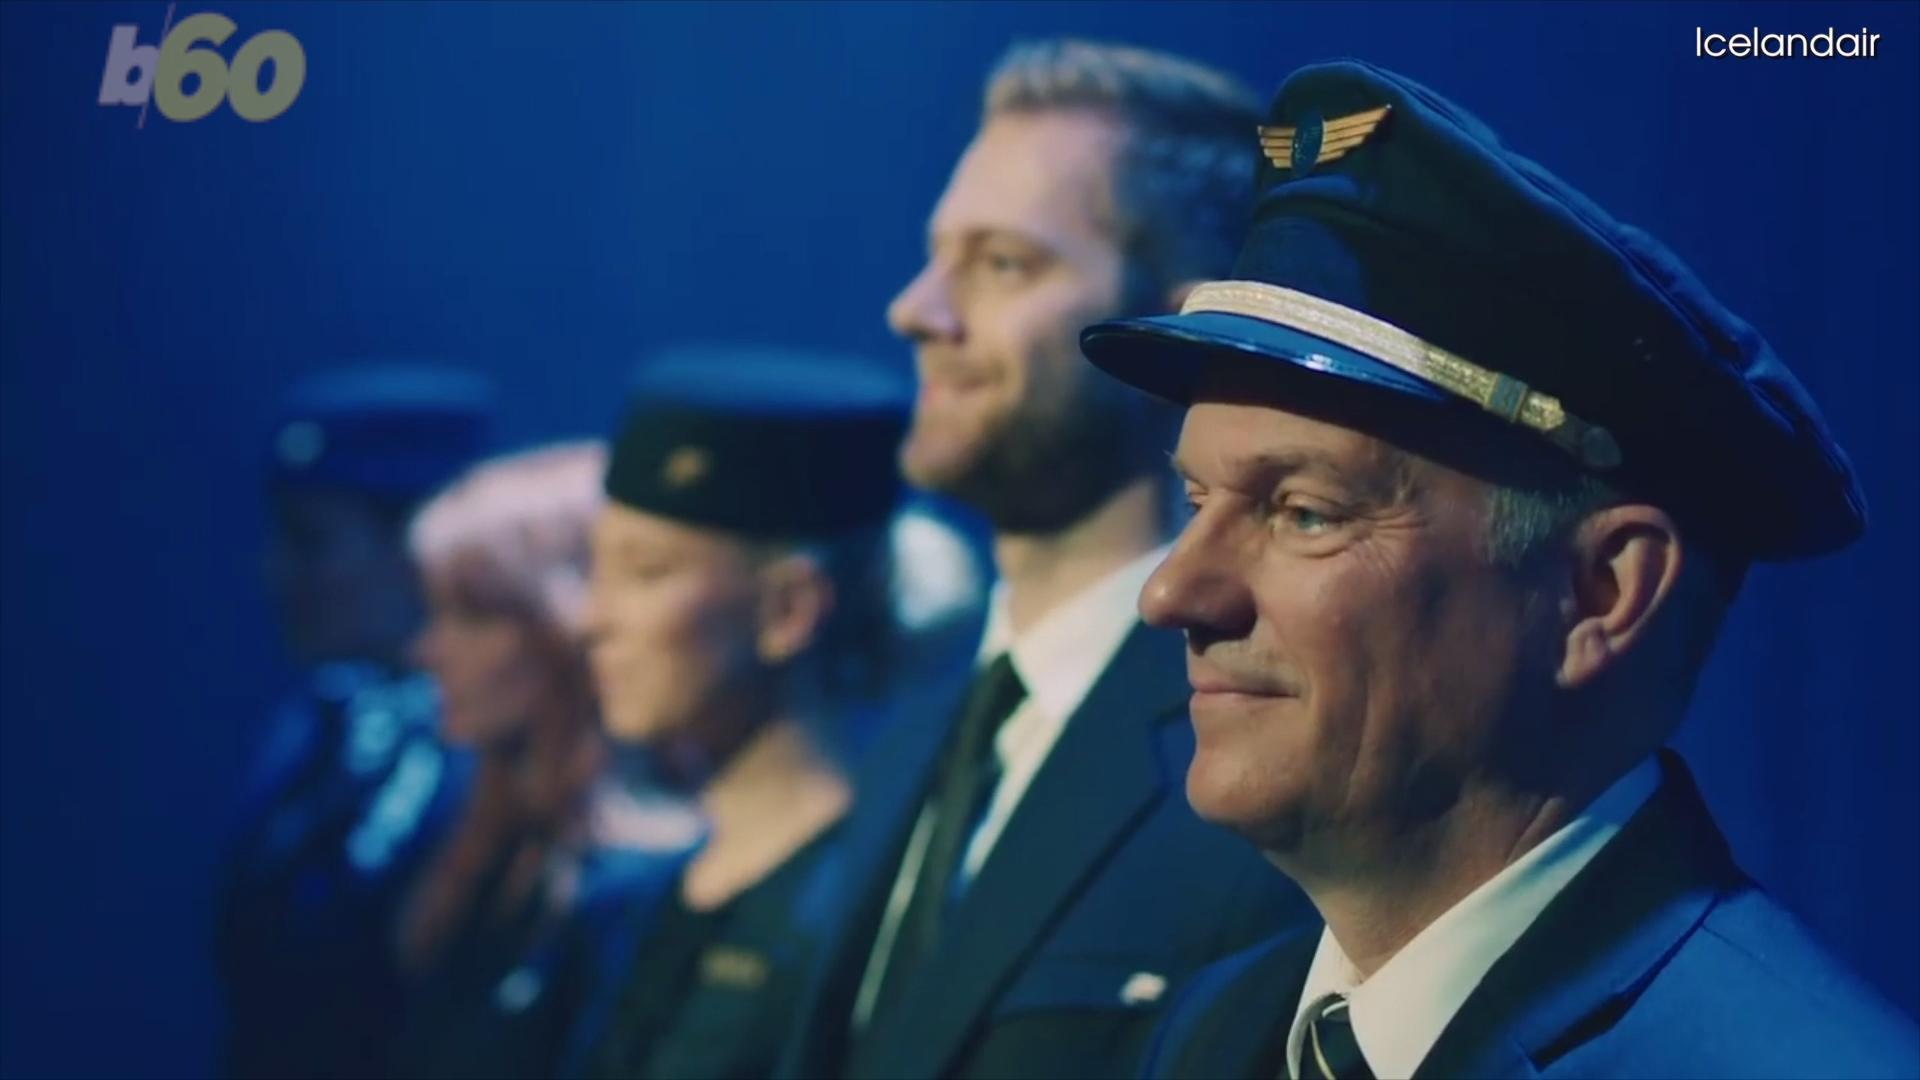 Airline Brings 'Immersive' Live Theater to the Skies